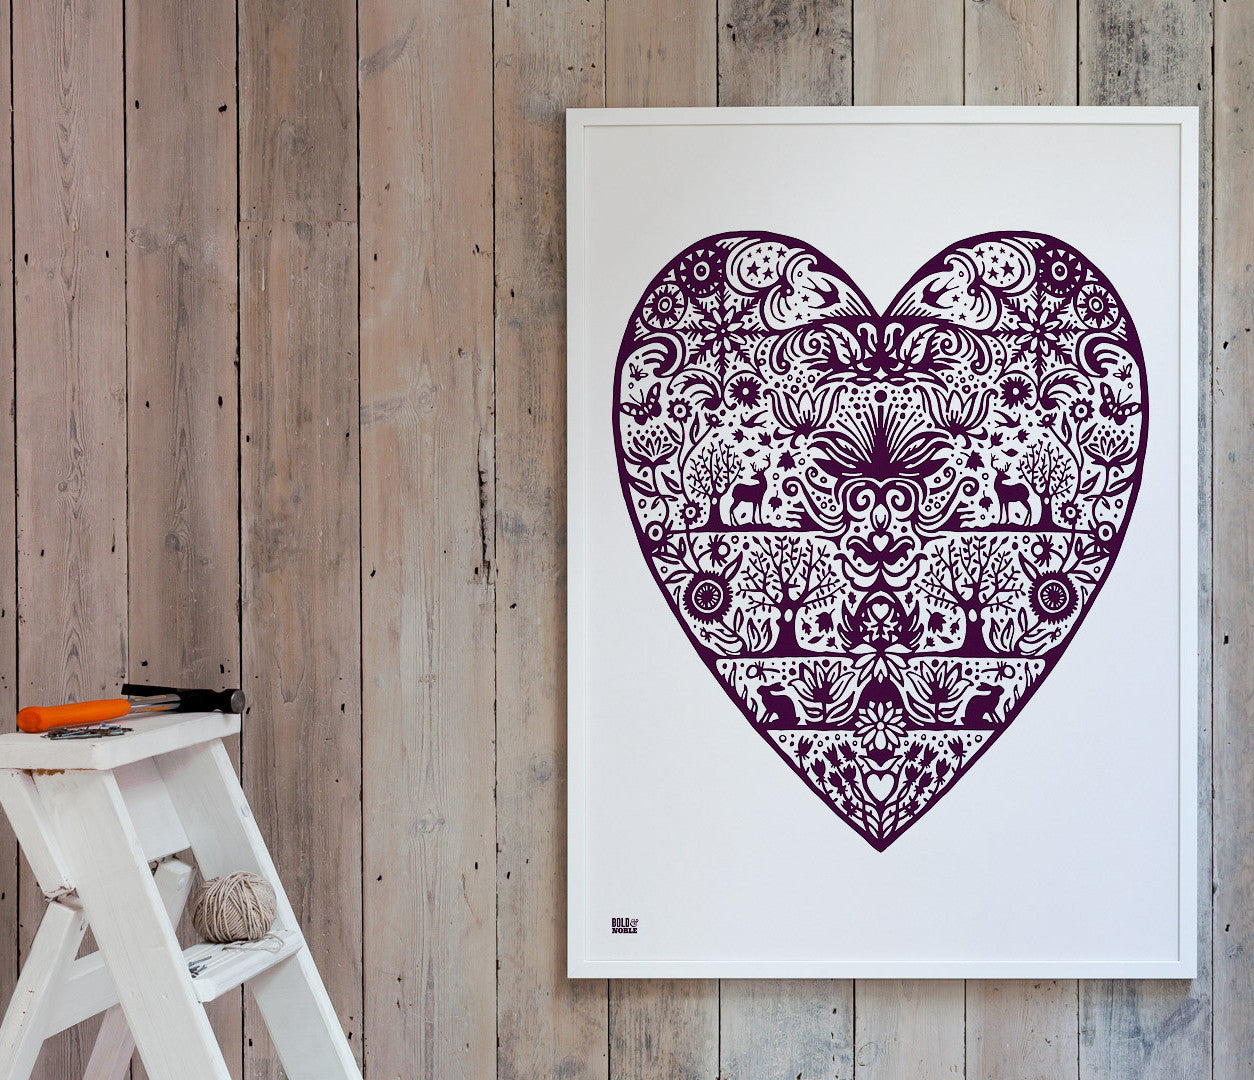 Wall Art ideas: Economical Screen Prints, My Heart in Dark Mulberry